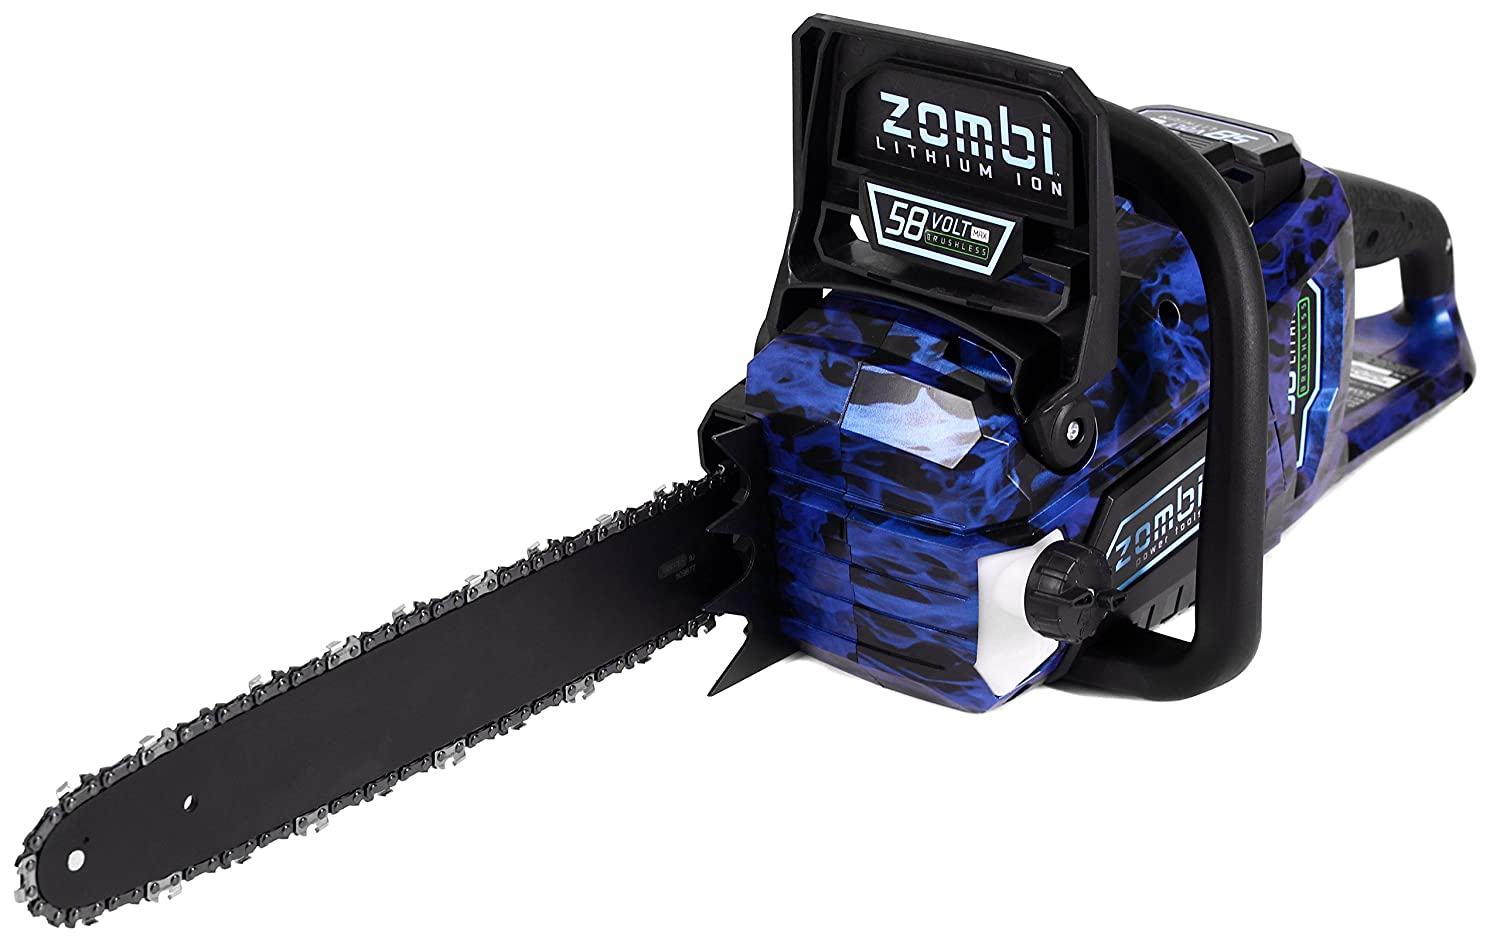 Zombi Power Tools ZCS5817 Chainsaws product image 5